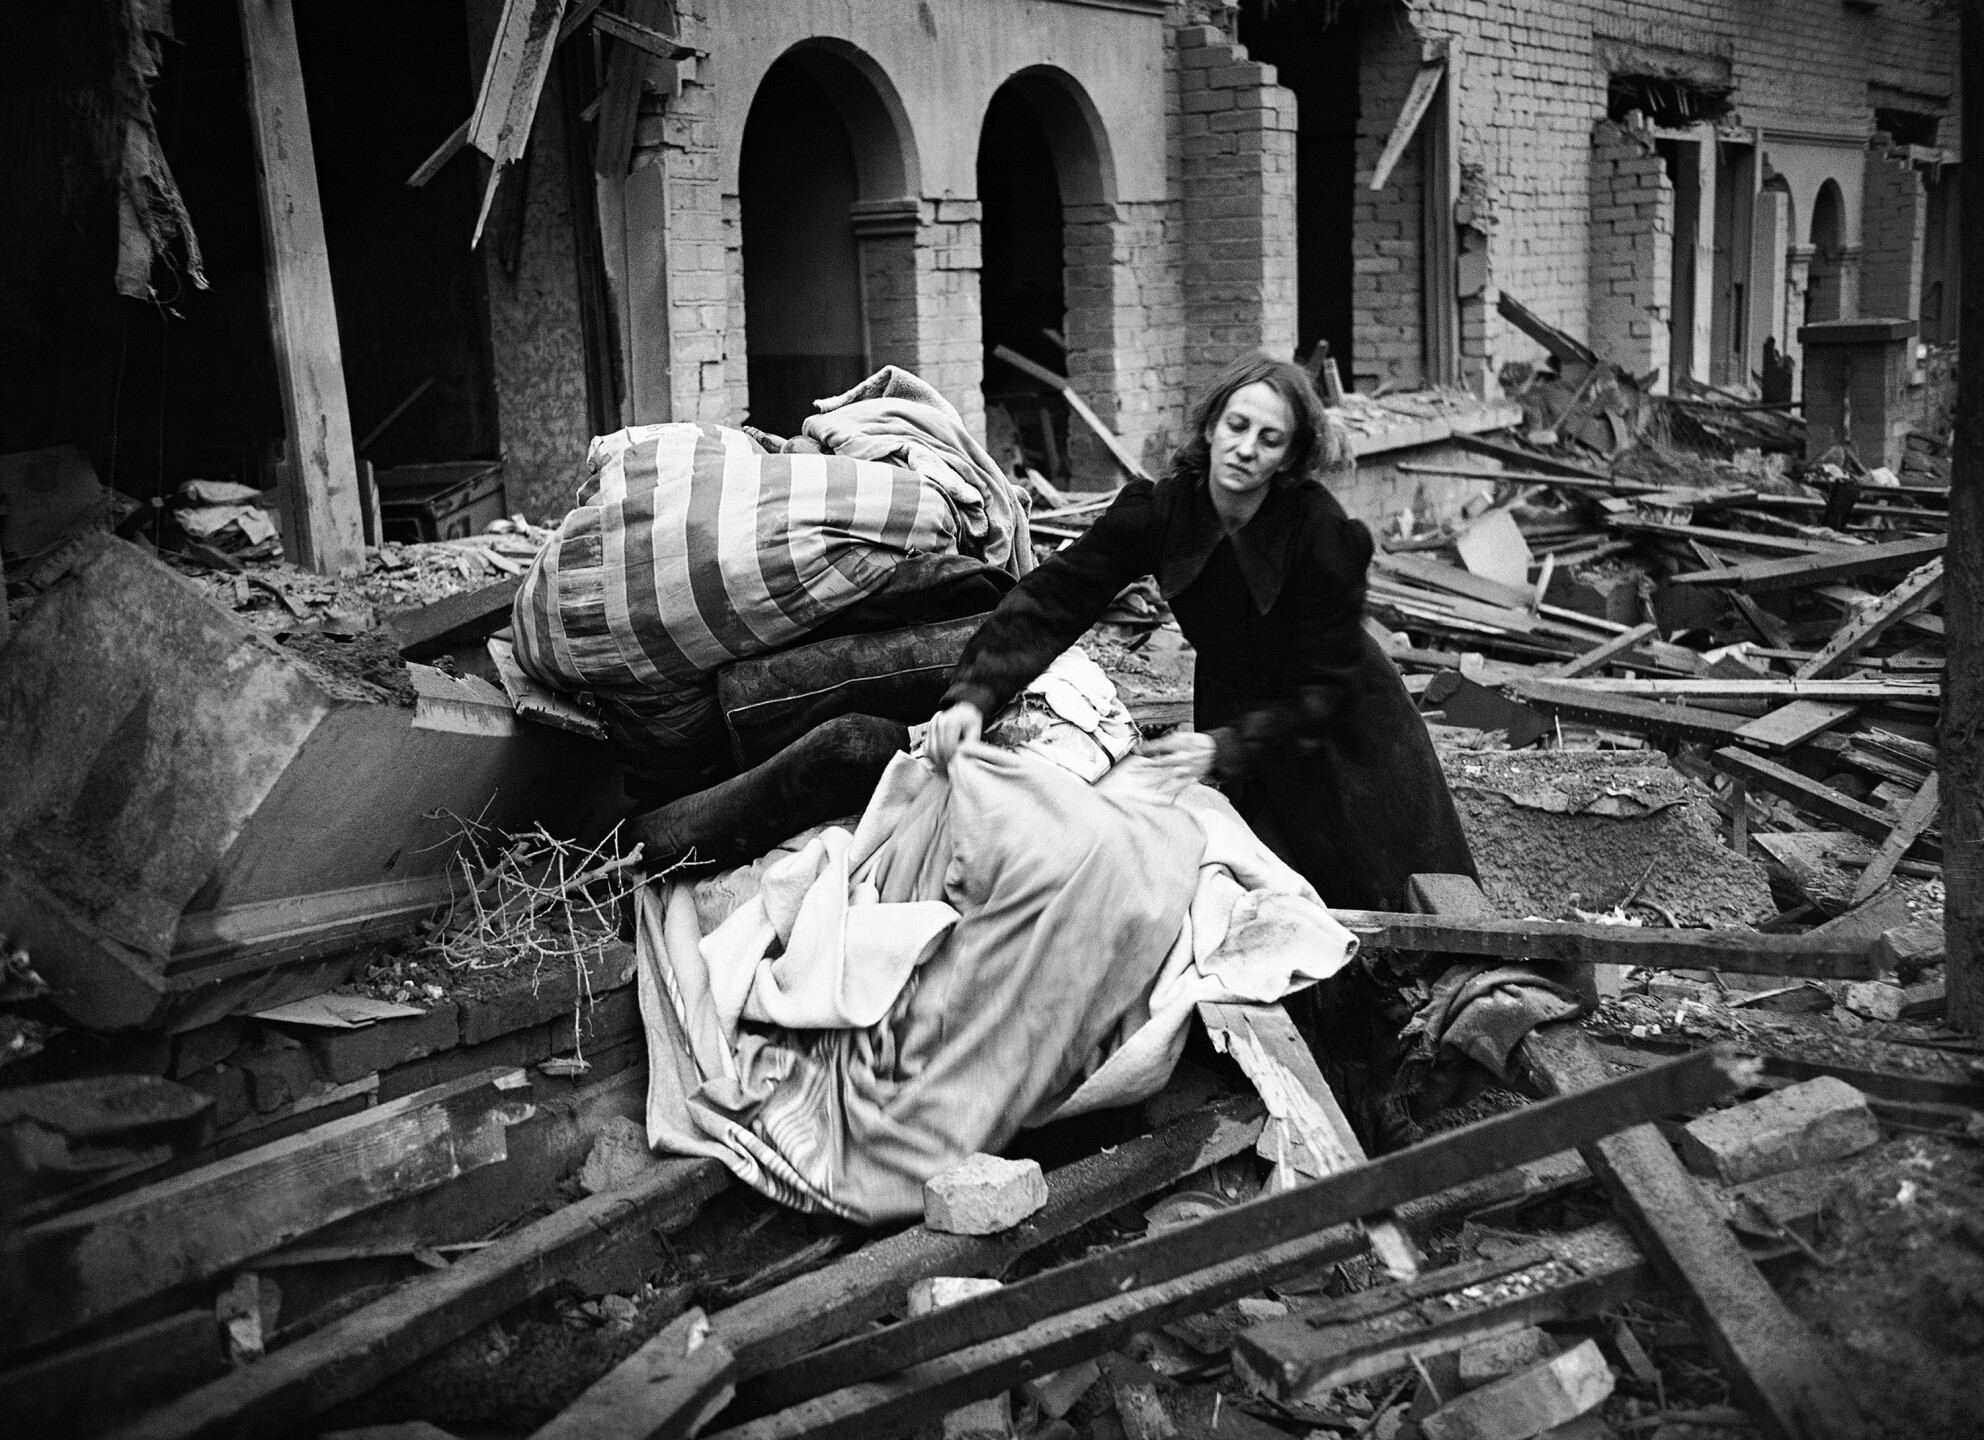 WWII London Rescuing Belongings